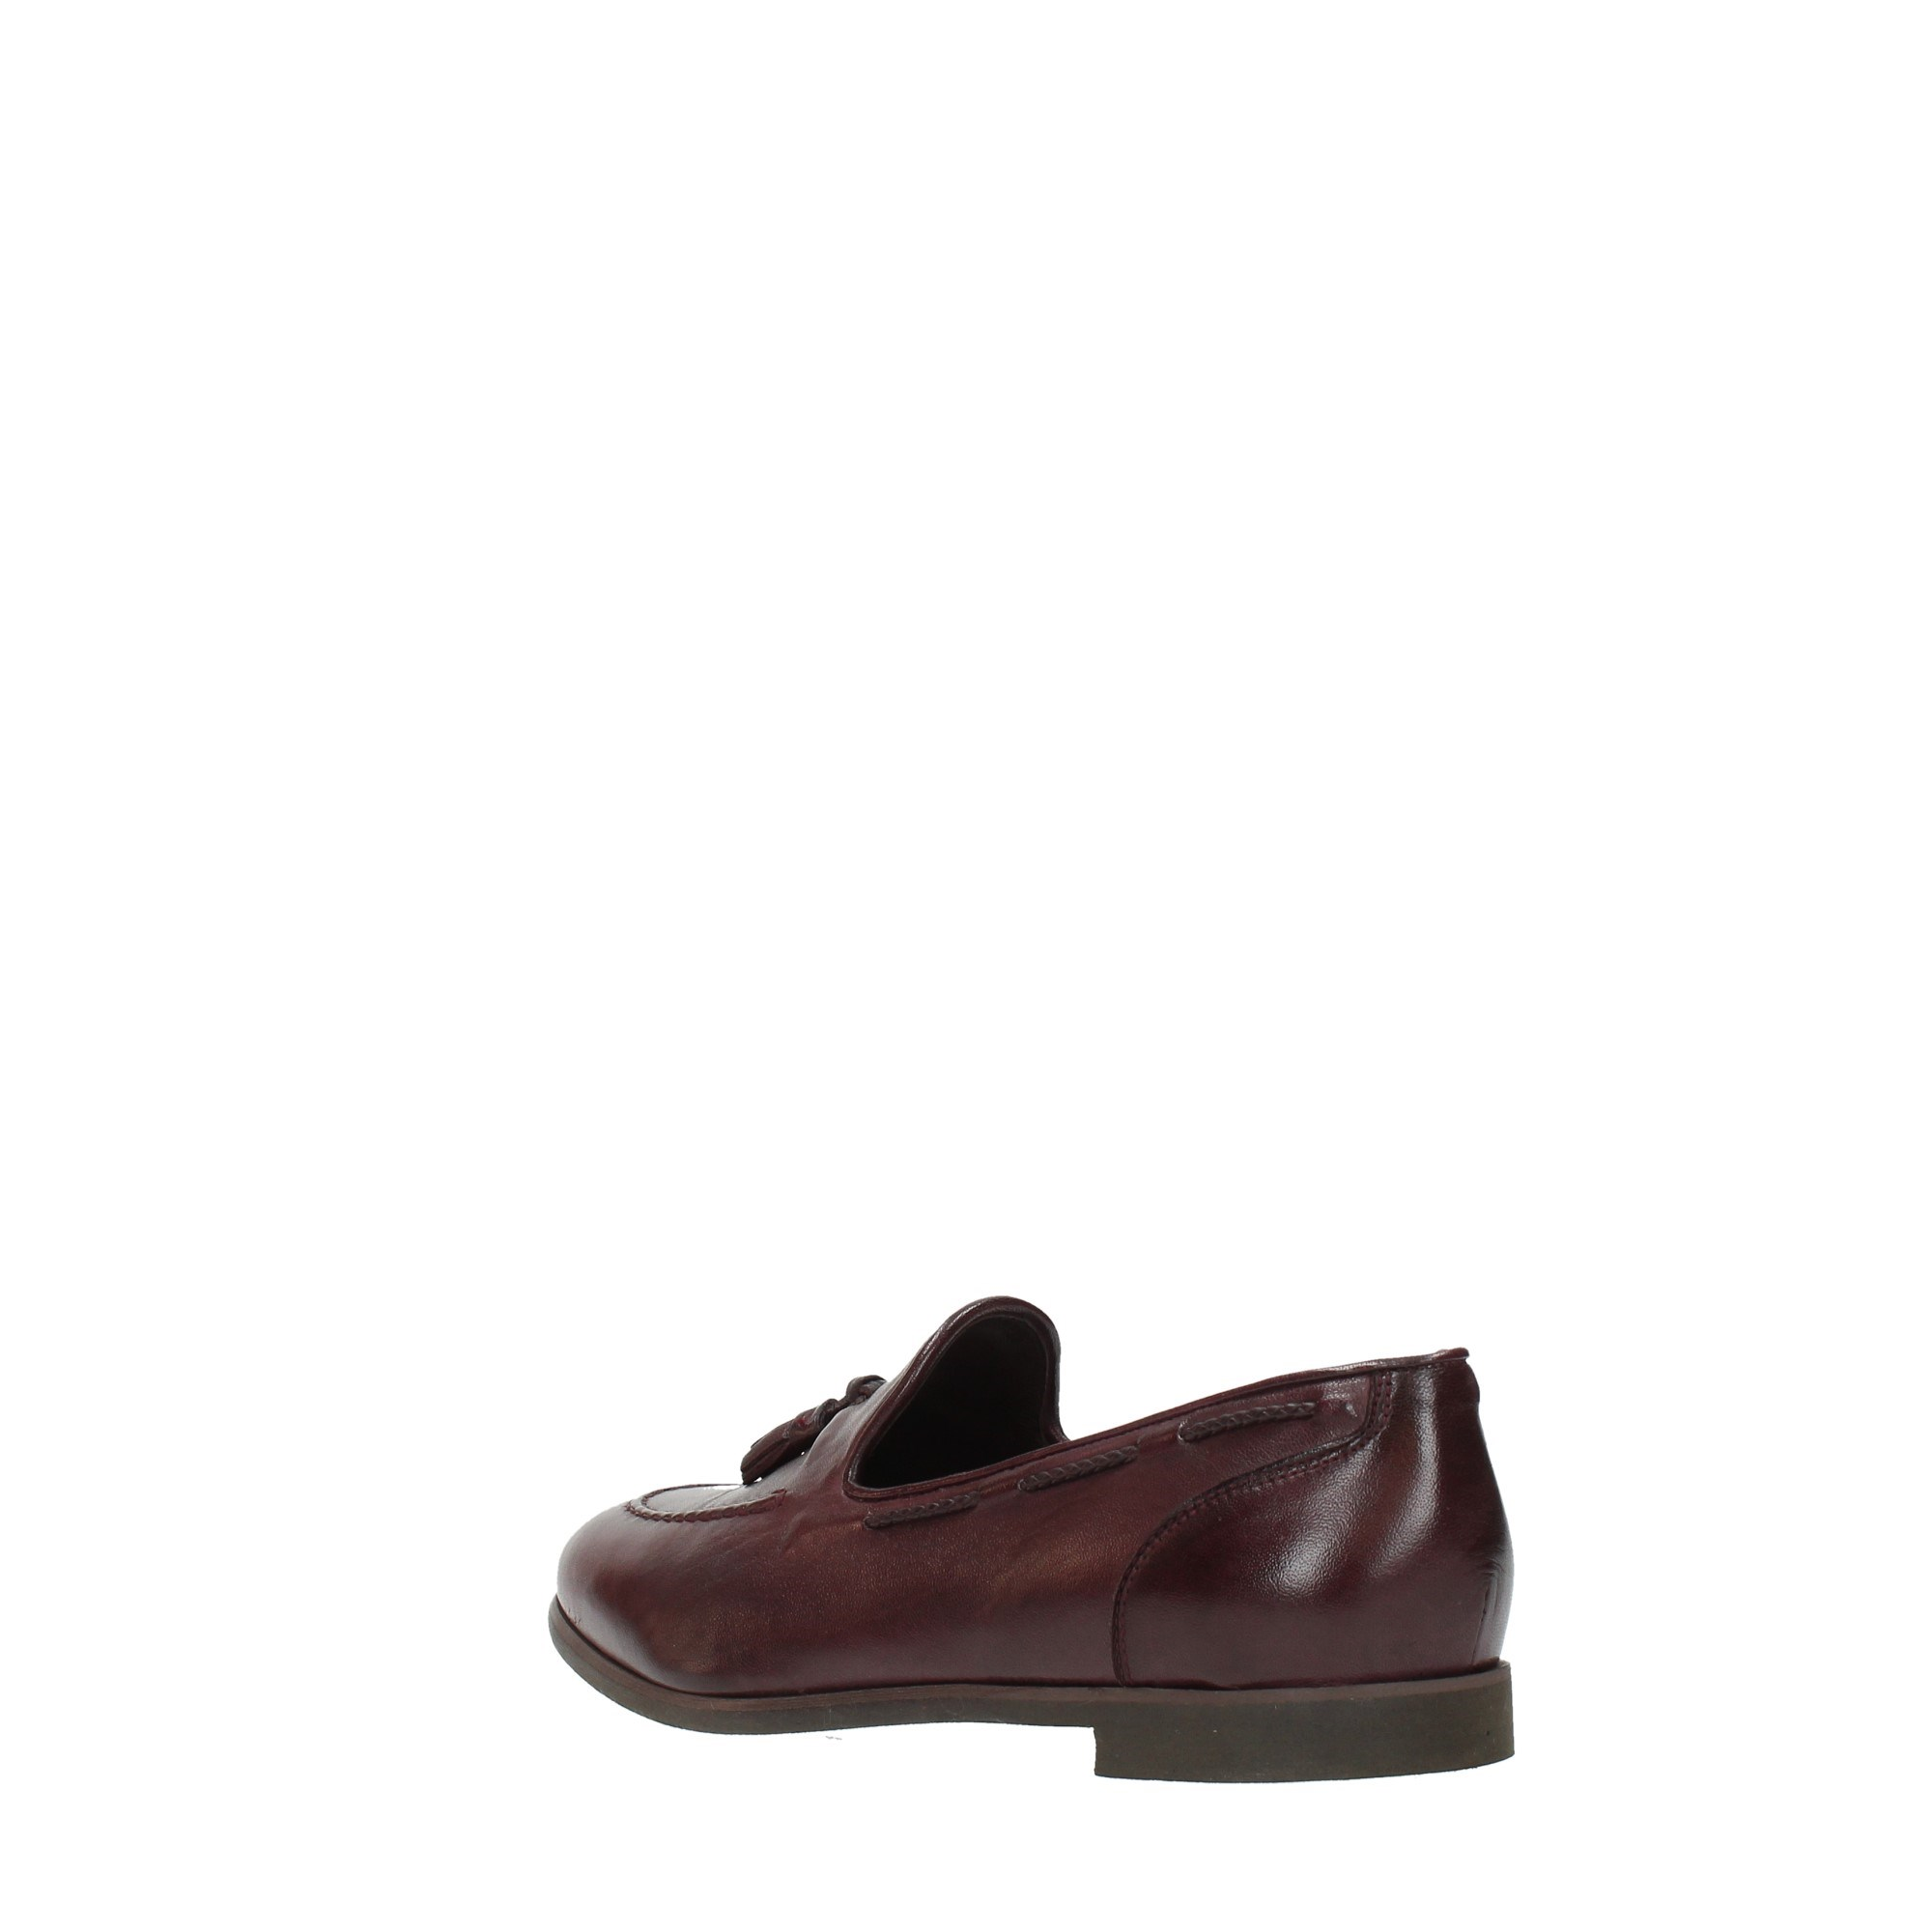 Jp David Shoes Man Moccasins And Slippers Bordeaux 809